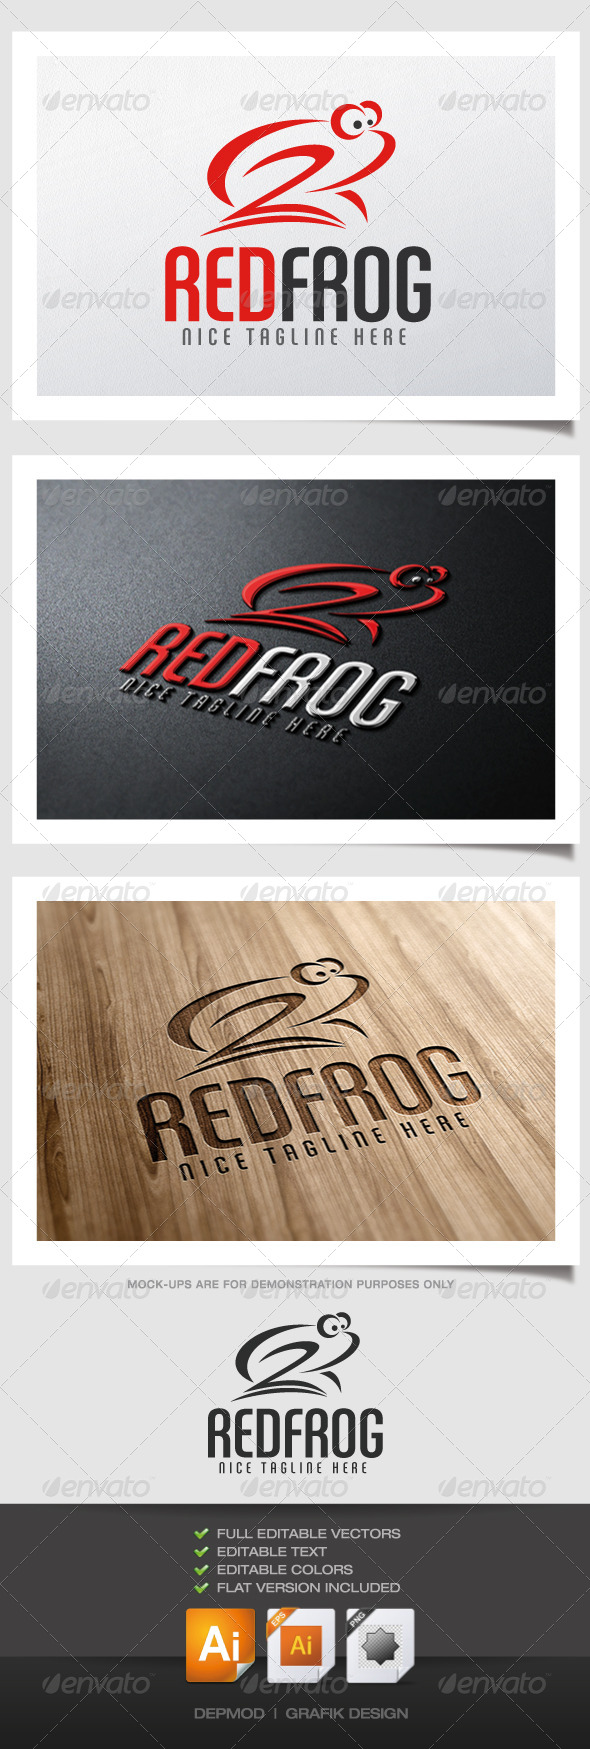 GraphicRiver Red Frog Logo 4632695